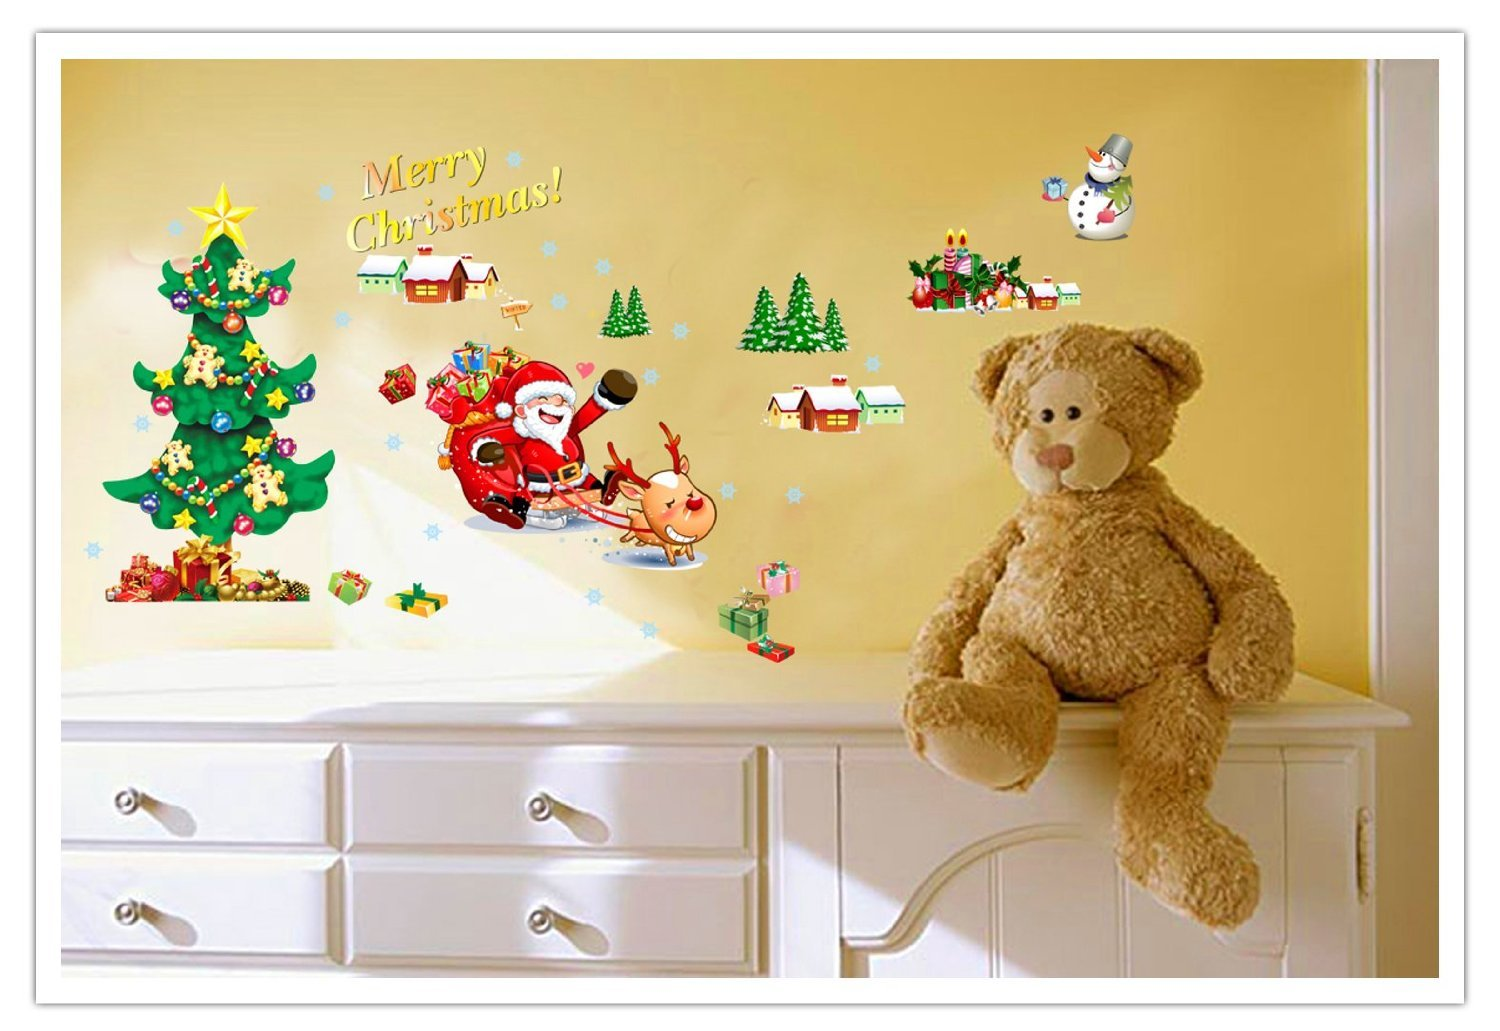 901A+B AM901A+B Amaonm Set of 2 Sheets Xlarge Merry Christmas Santa Claus Christmas Tree Christmas Stockings Christmas Gifts Wall Decals Removable Wall Stickers Murals for Living Room Bedroom Shop Window